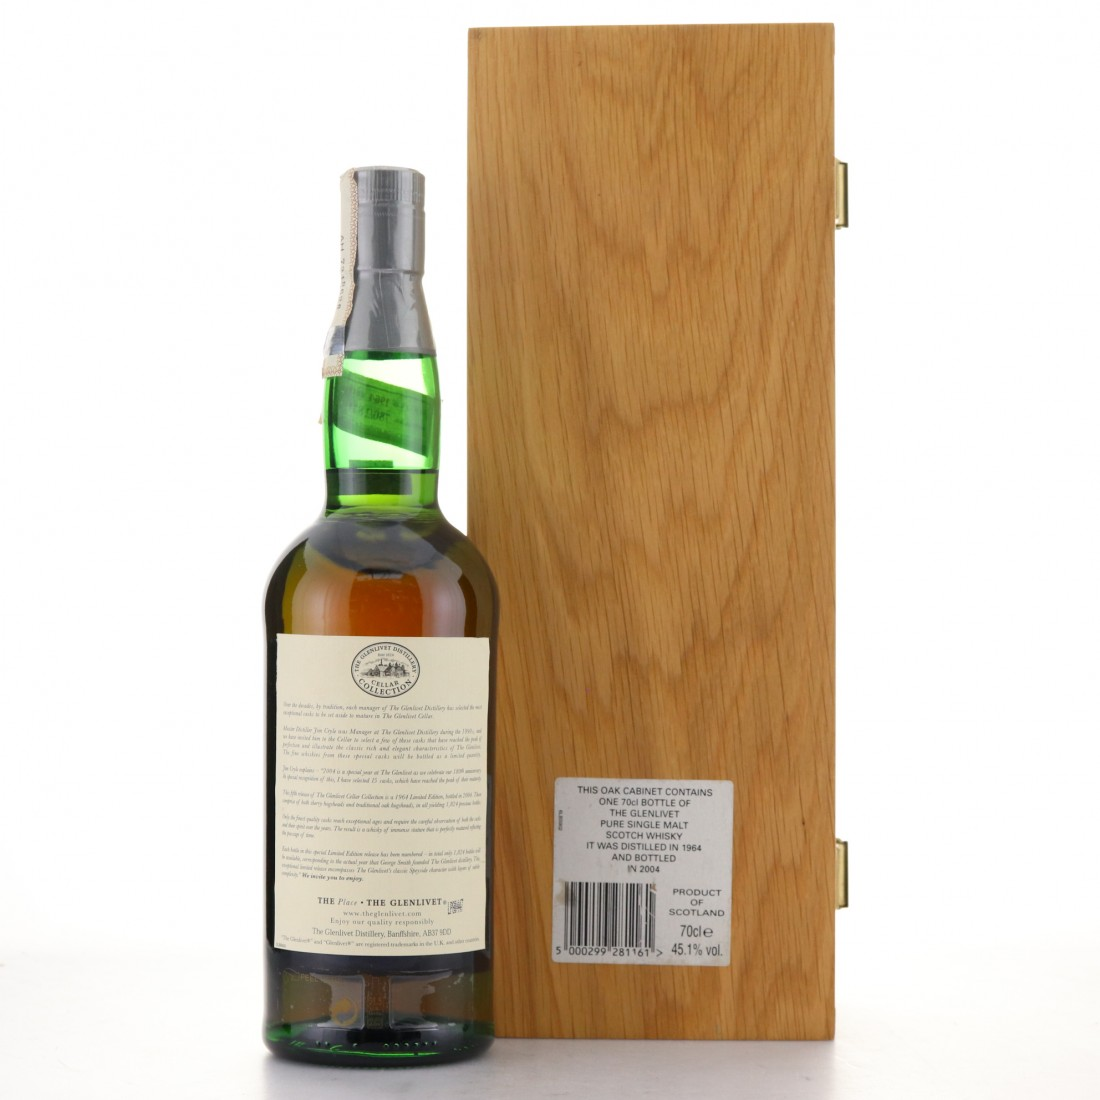 Glenlivet 1964 Cellar Collection Cask Strength